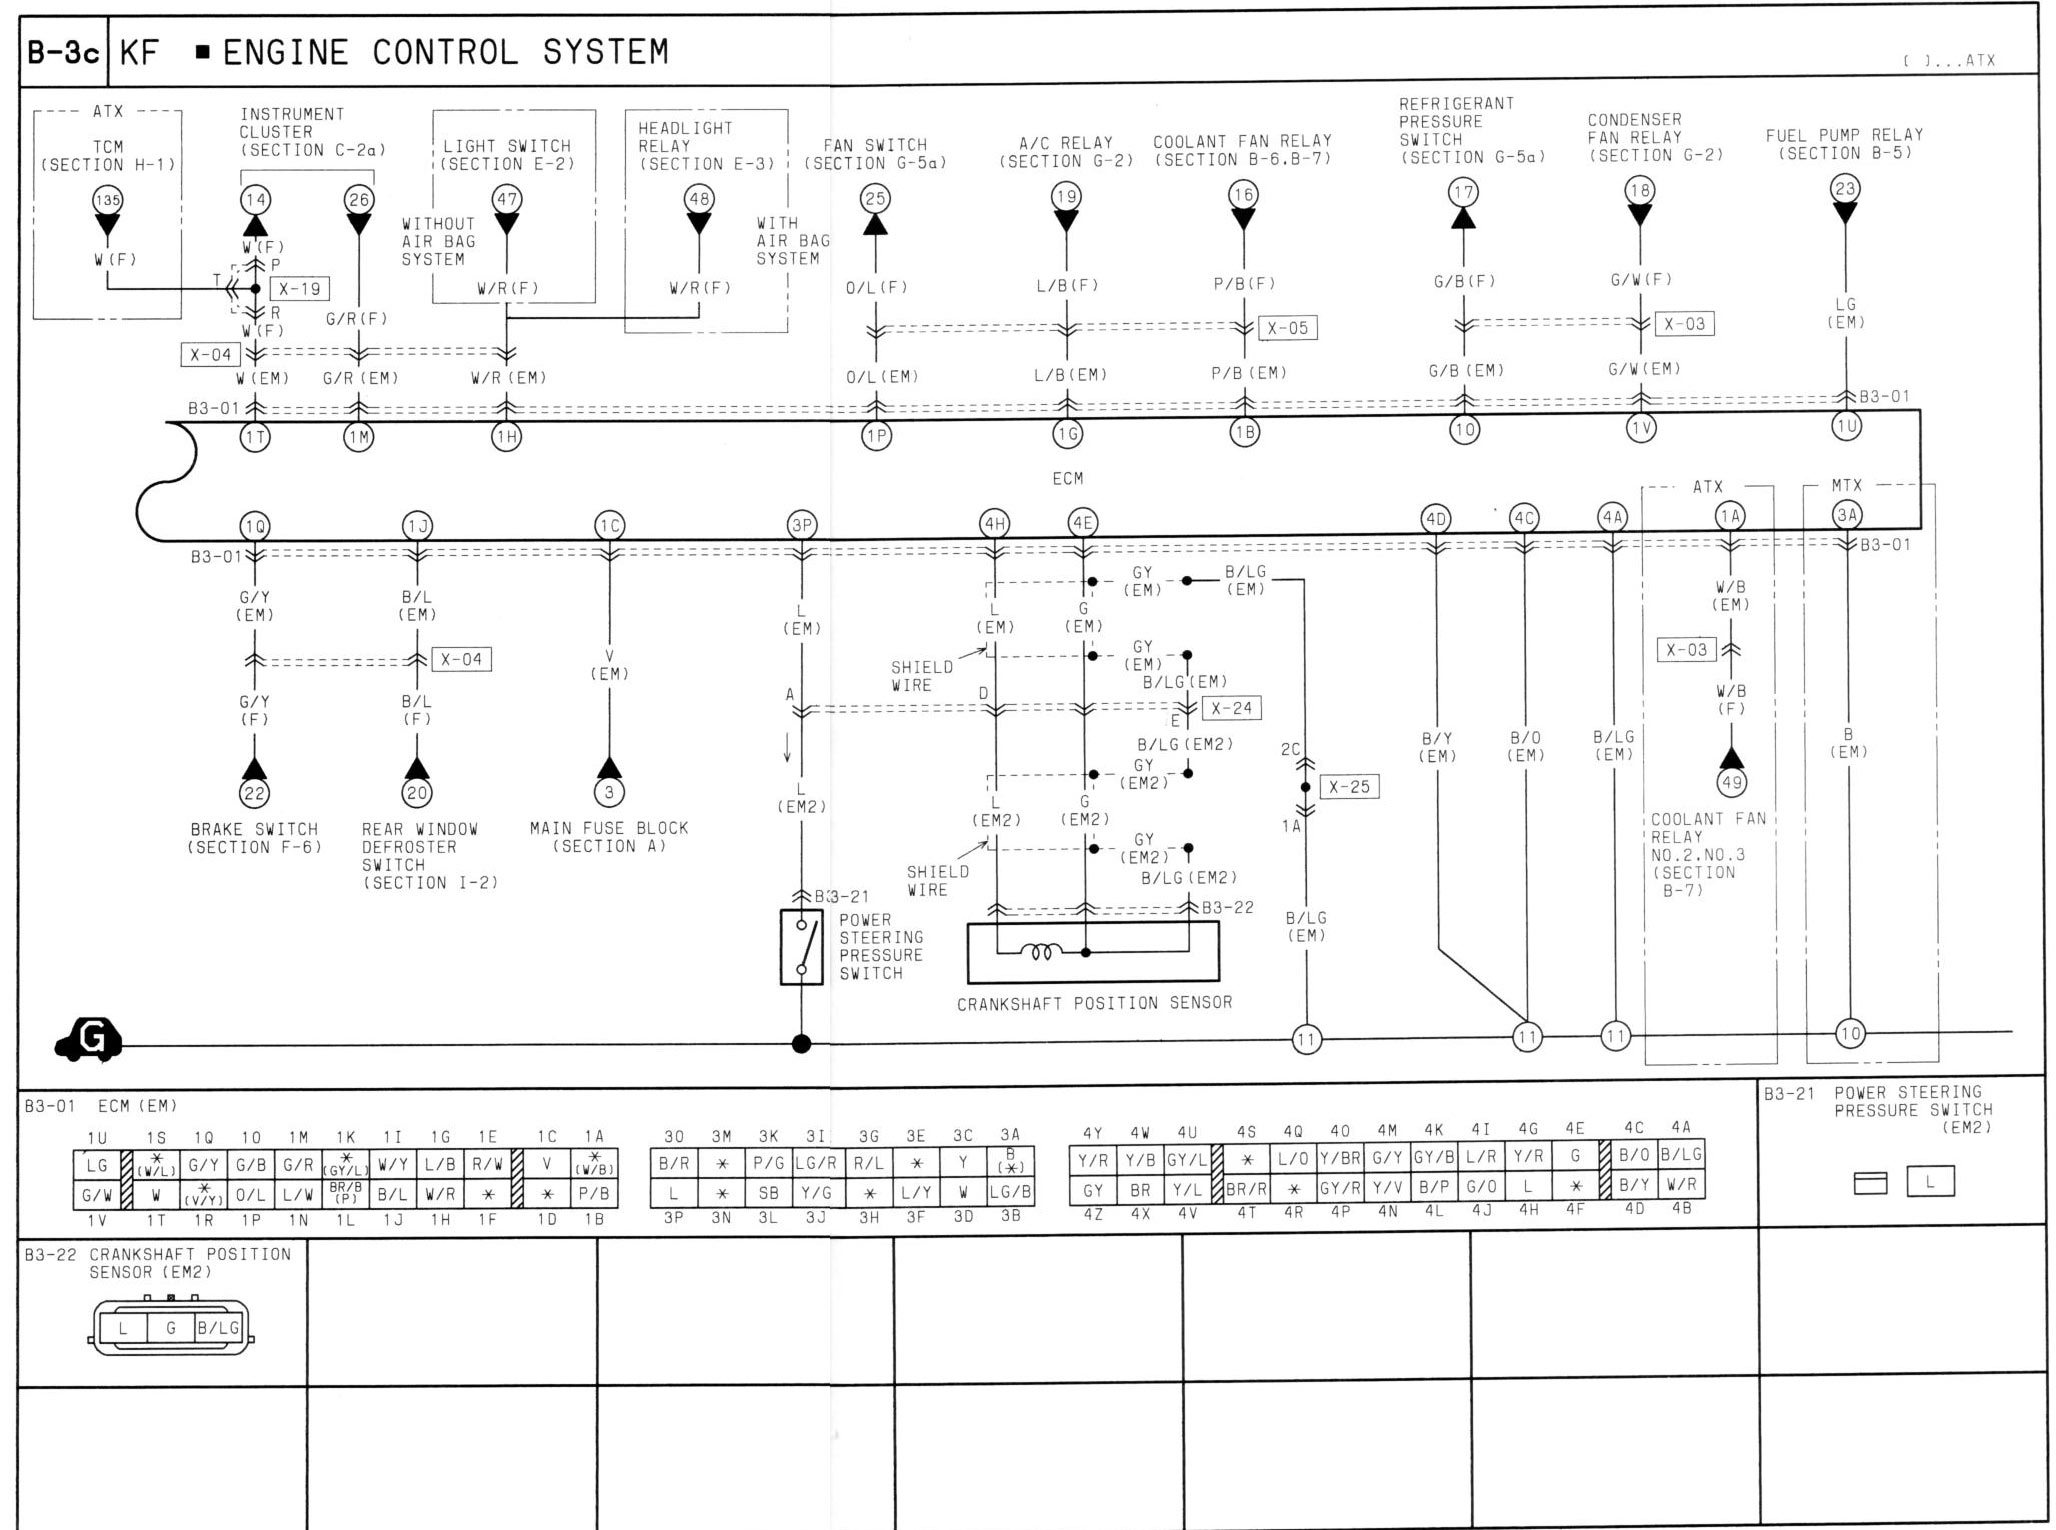 1996 mazda millenia wiring diagram and electrical system wiring  1996 mazda millenia wiring diagram and electrical system wiringhome; mazda 323 bg wiring diagram